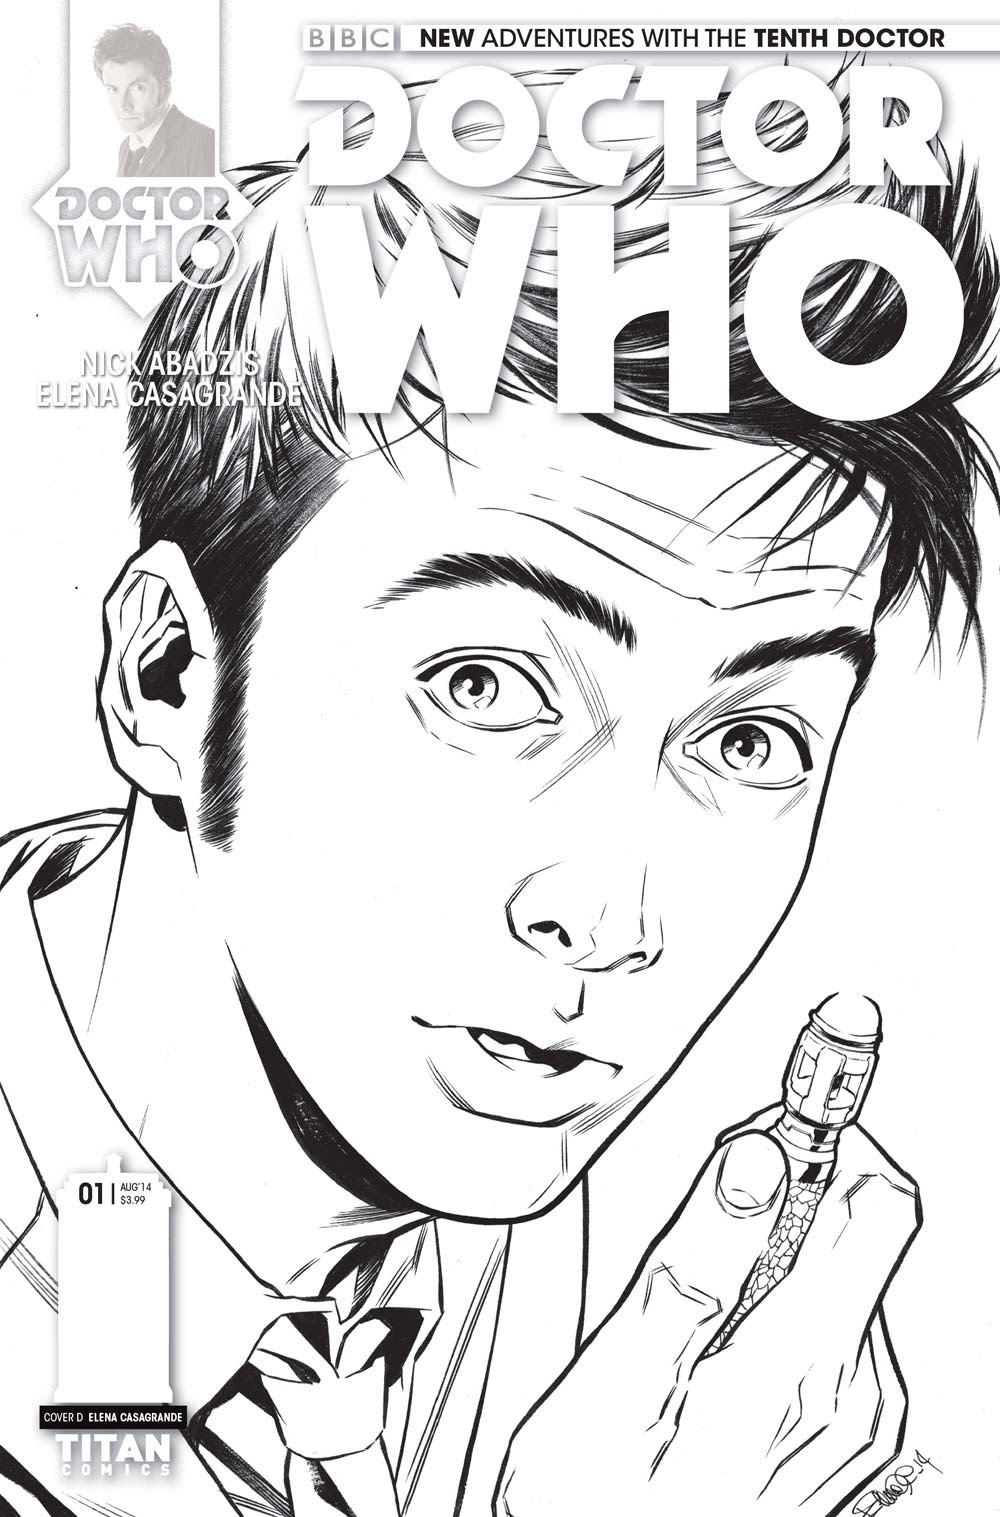 Titan Comics shows off Doctor Who 10 and 11 variant covers